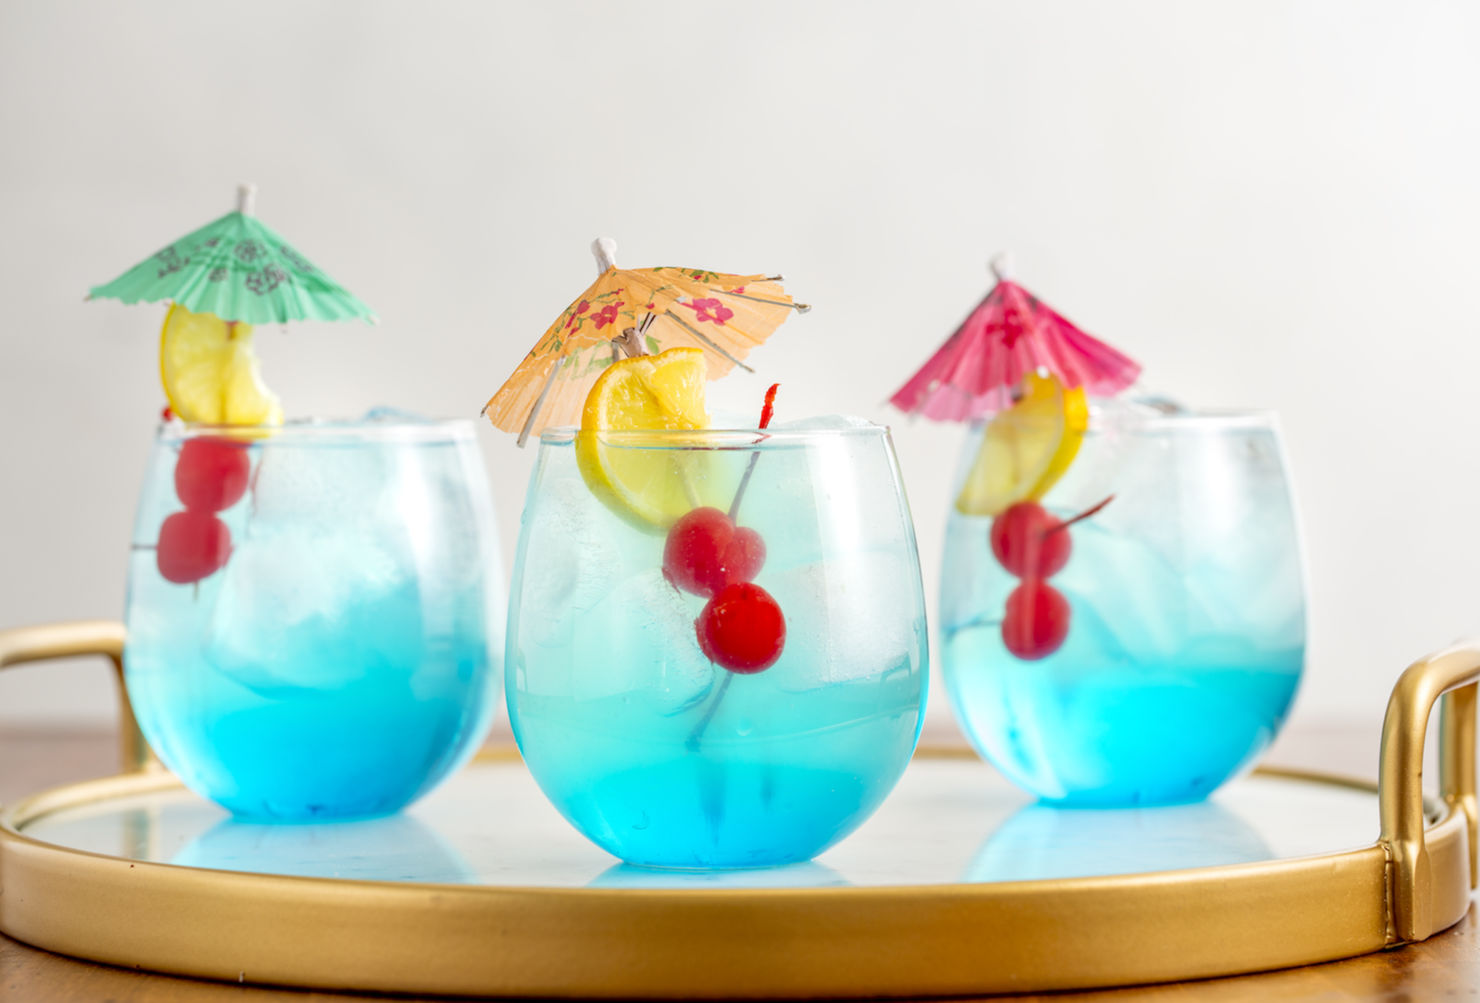 Mermaid Lemonade, una bebida tropical para chicos y grandes